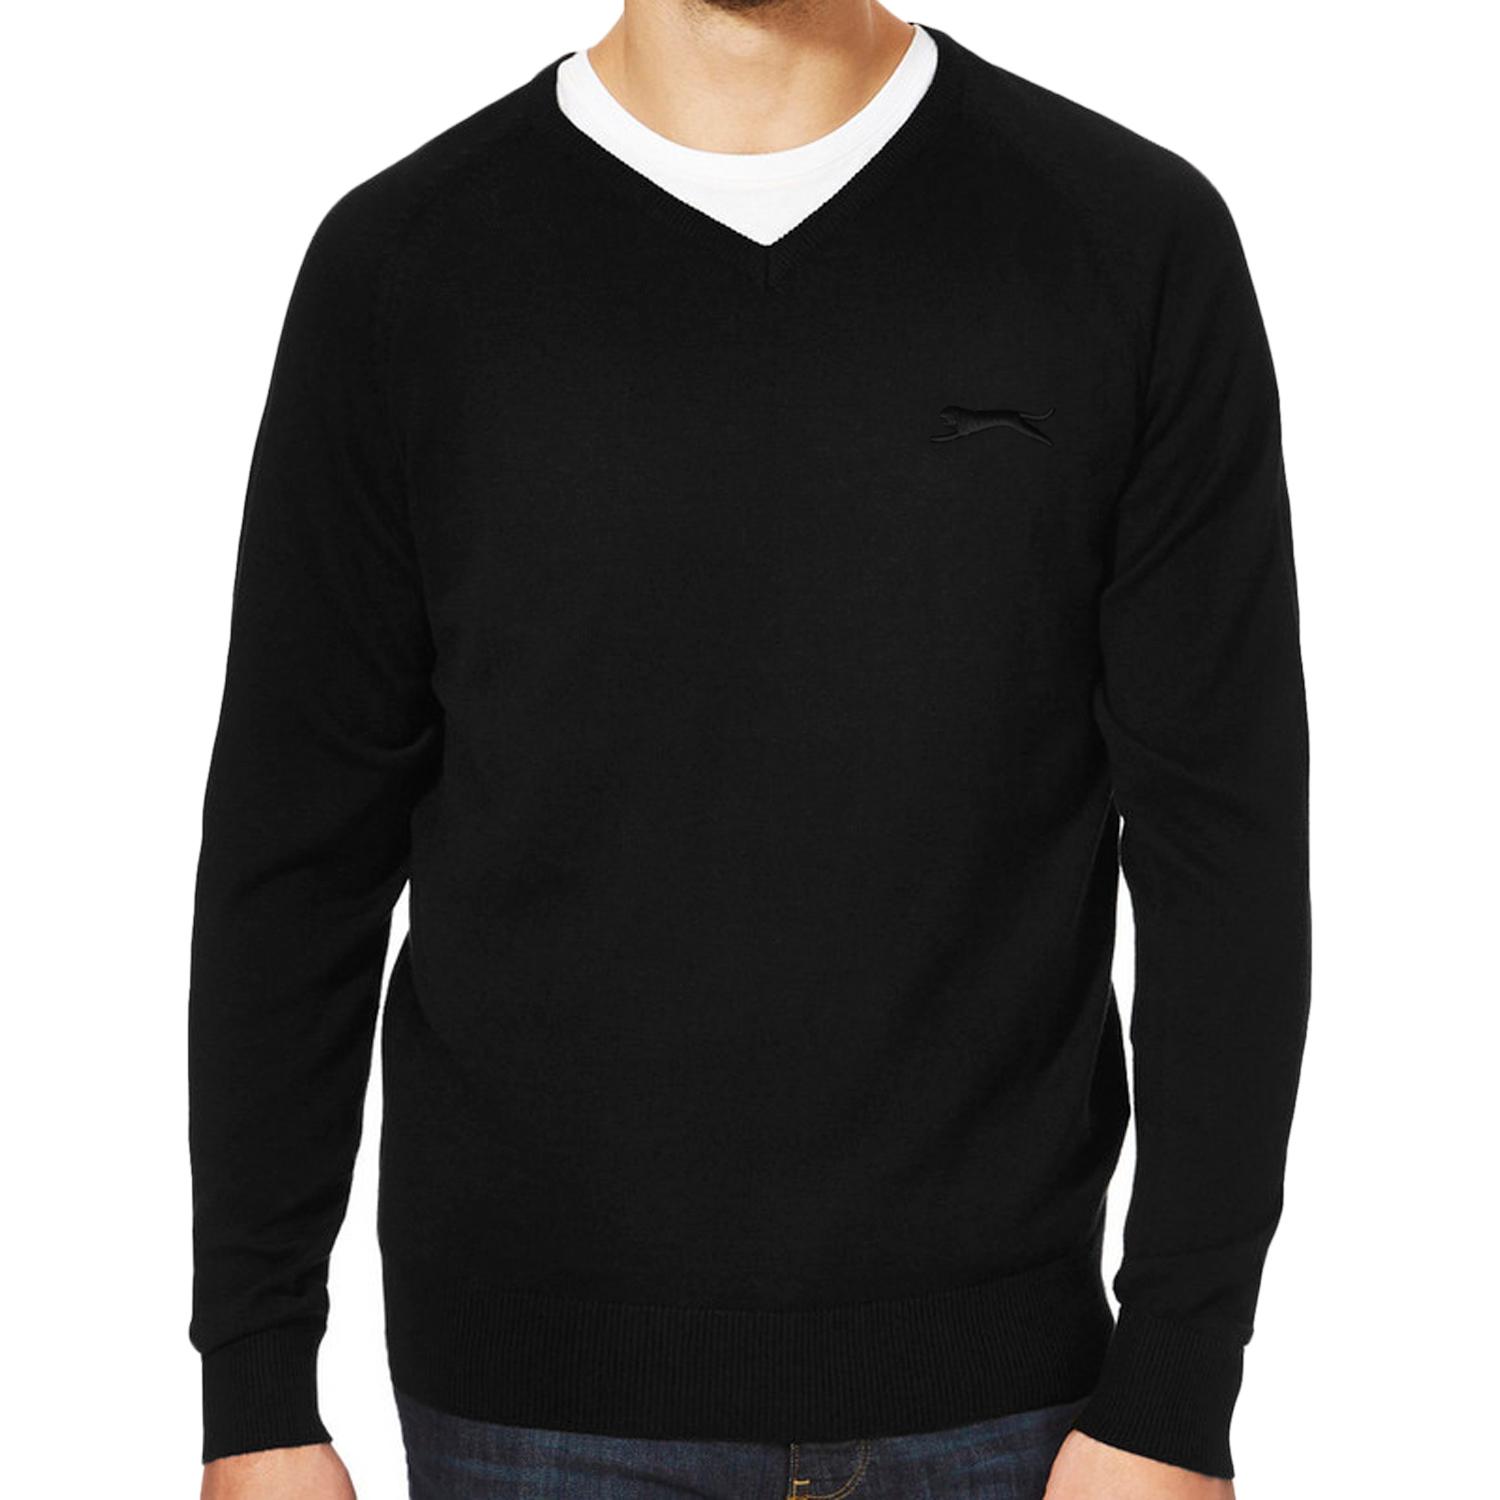 Slazenger Seve Mens Plain V Neck Golf Pullover Jumper Knit Sweater ...